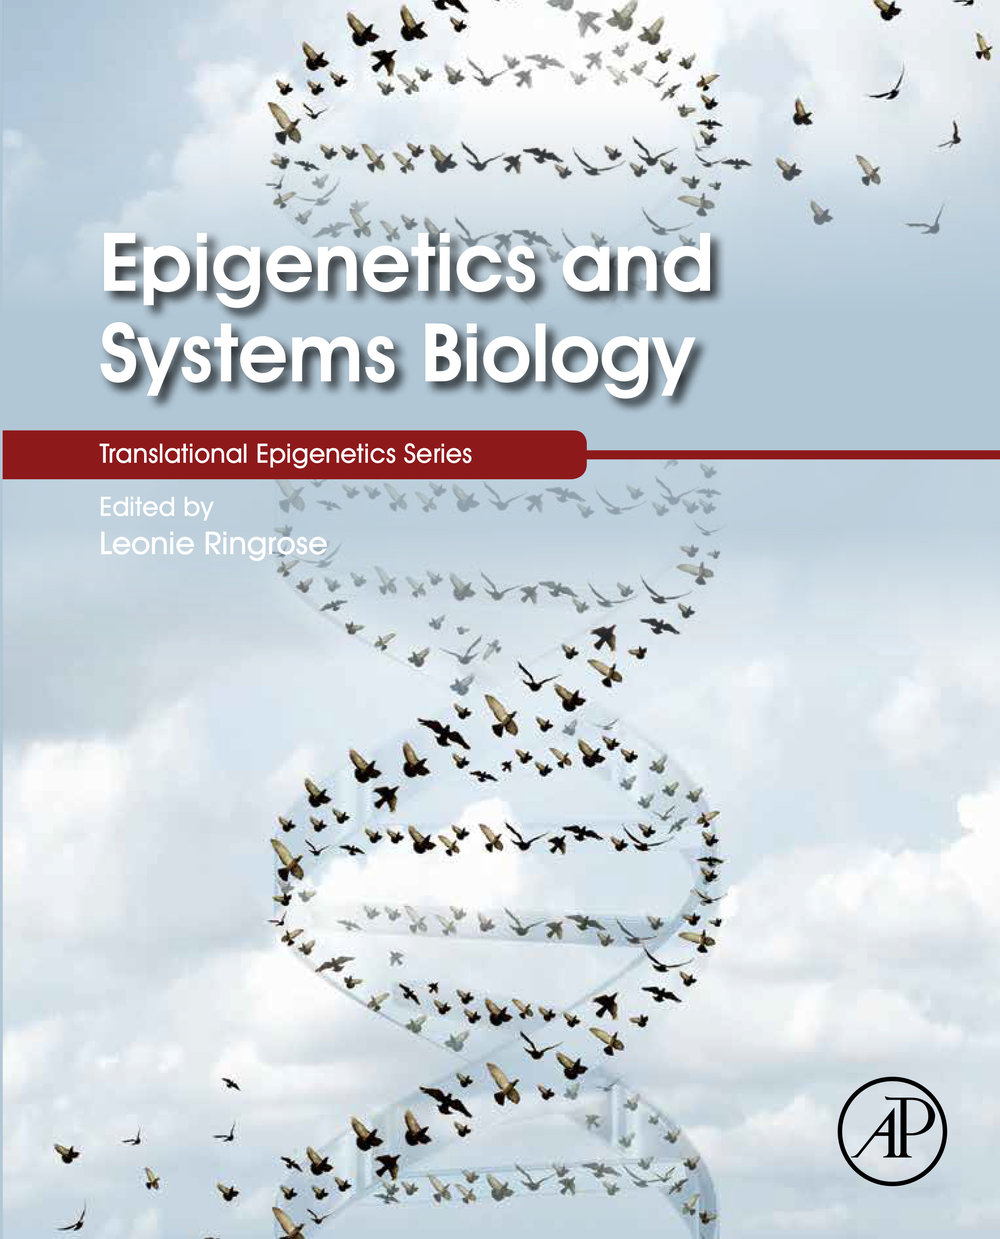 Cover Epigenetics and Systems Biology.jpg